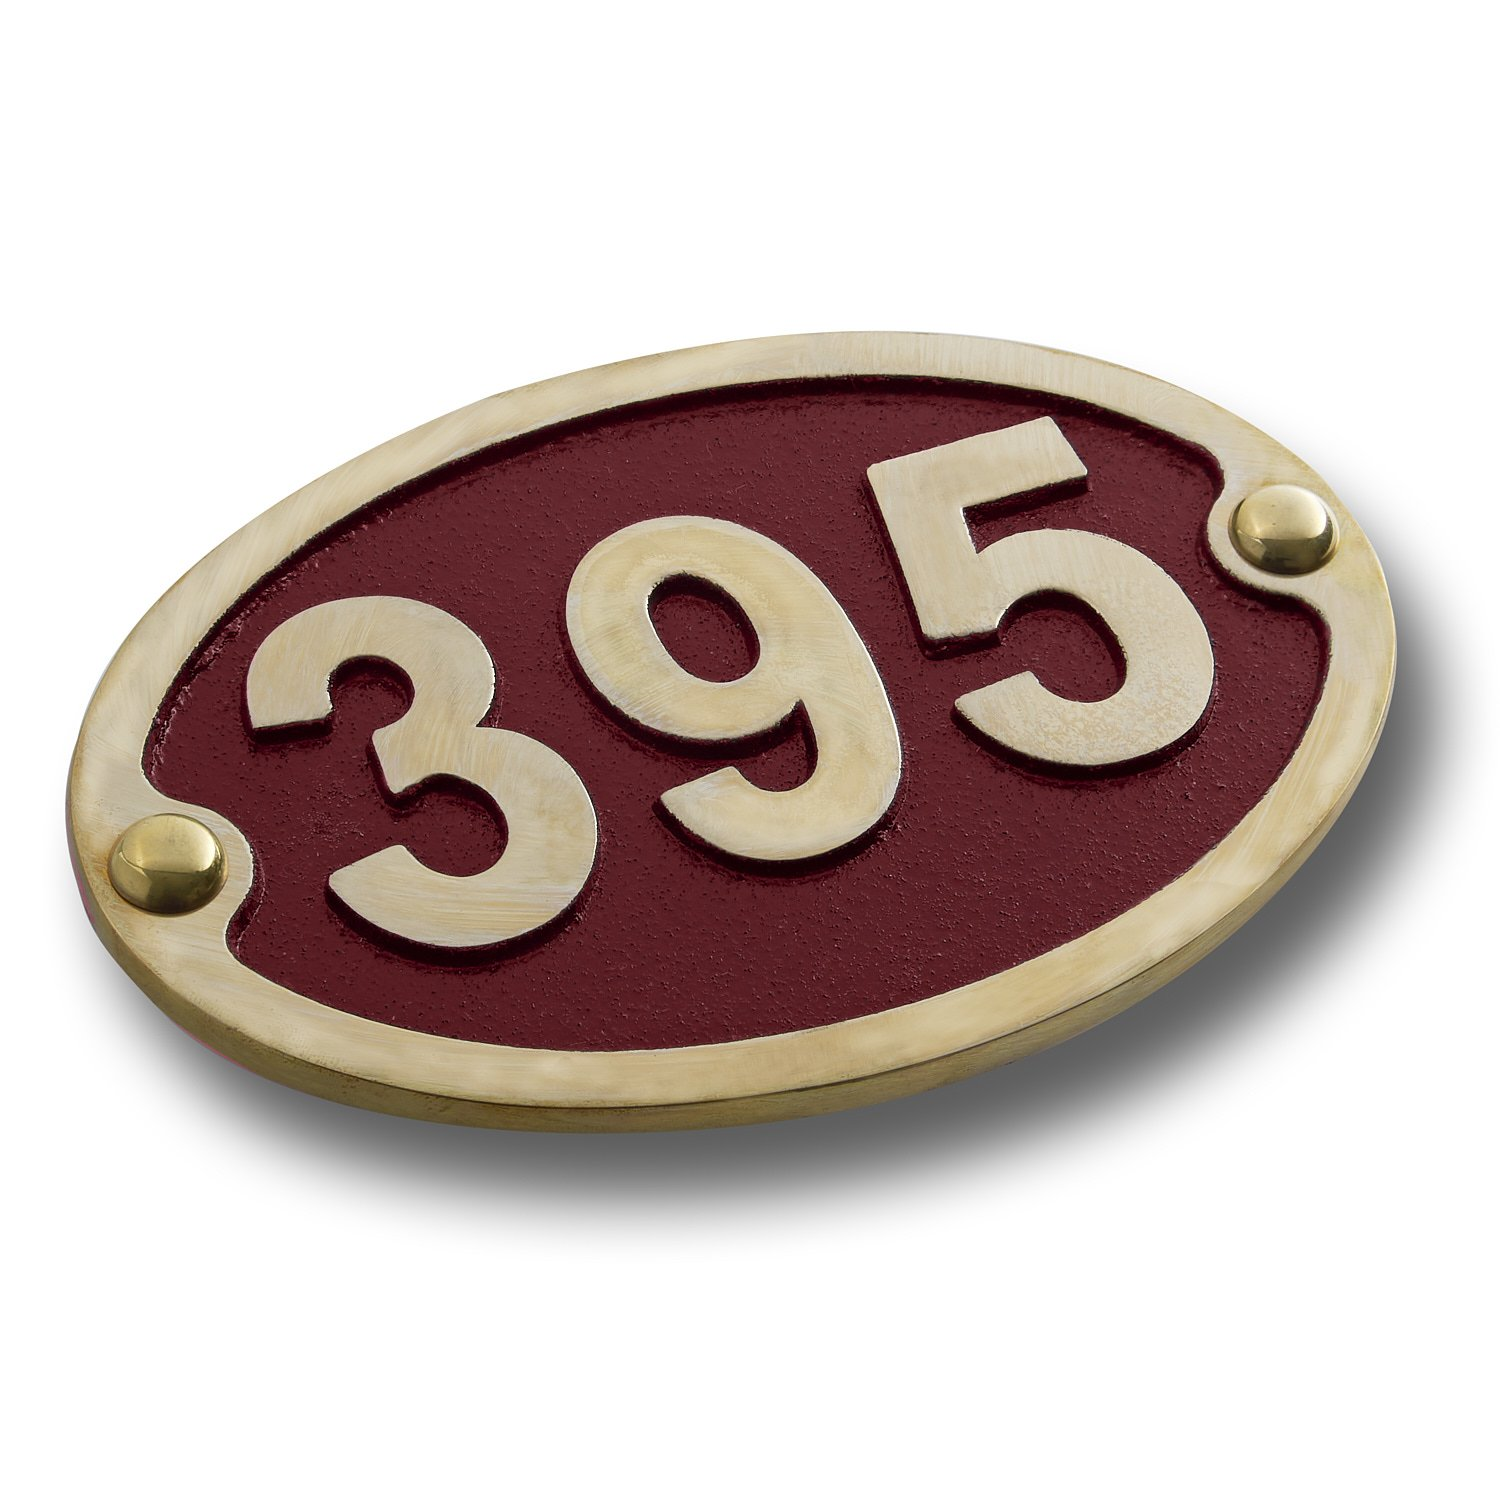 House Number Address Plaque Traditional Oval Style. Cast Metal Personalised Yard Or Mailbox Sign With Oodles Of Color, Number And Letter Options. Handmade In England By The Metal Foundry Just For You